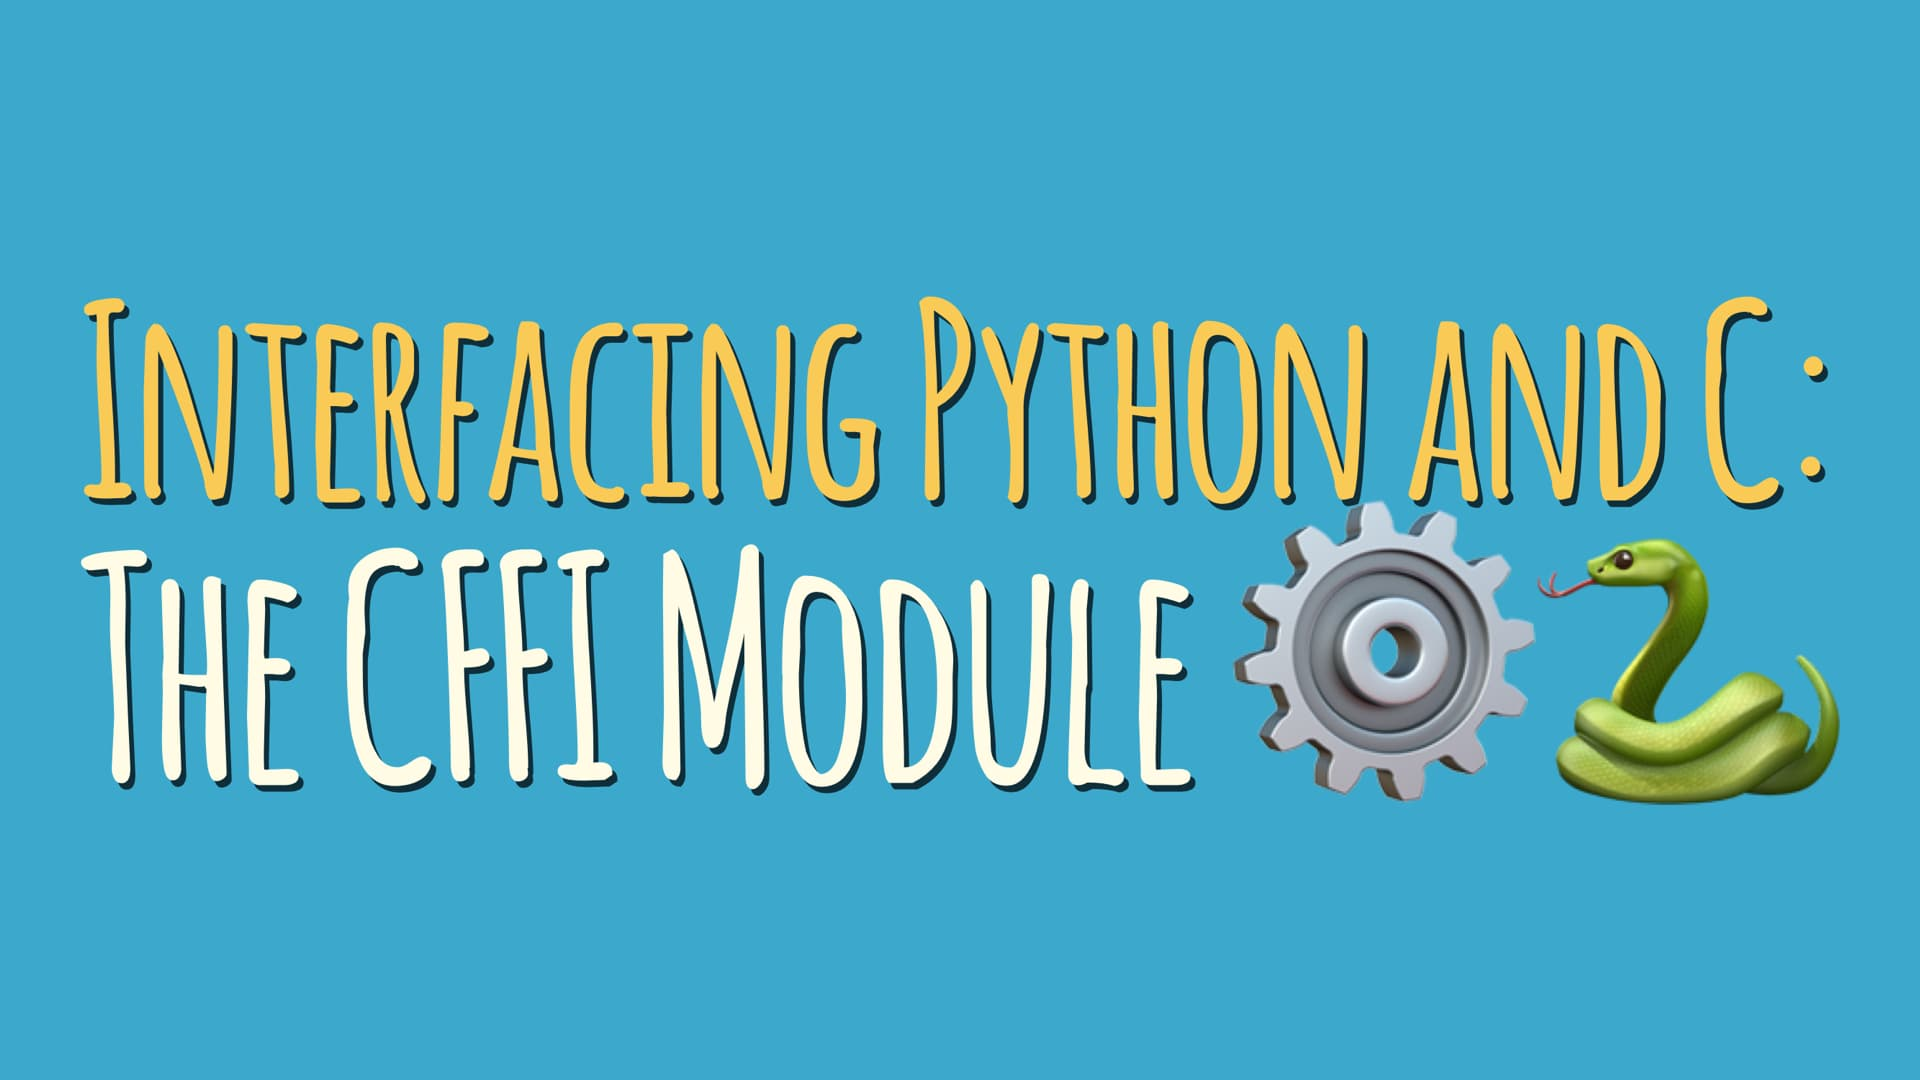 Python and the CFFI module